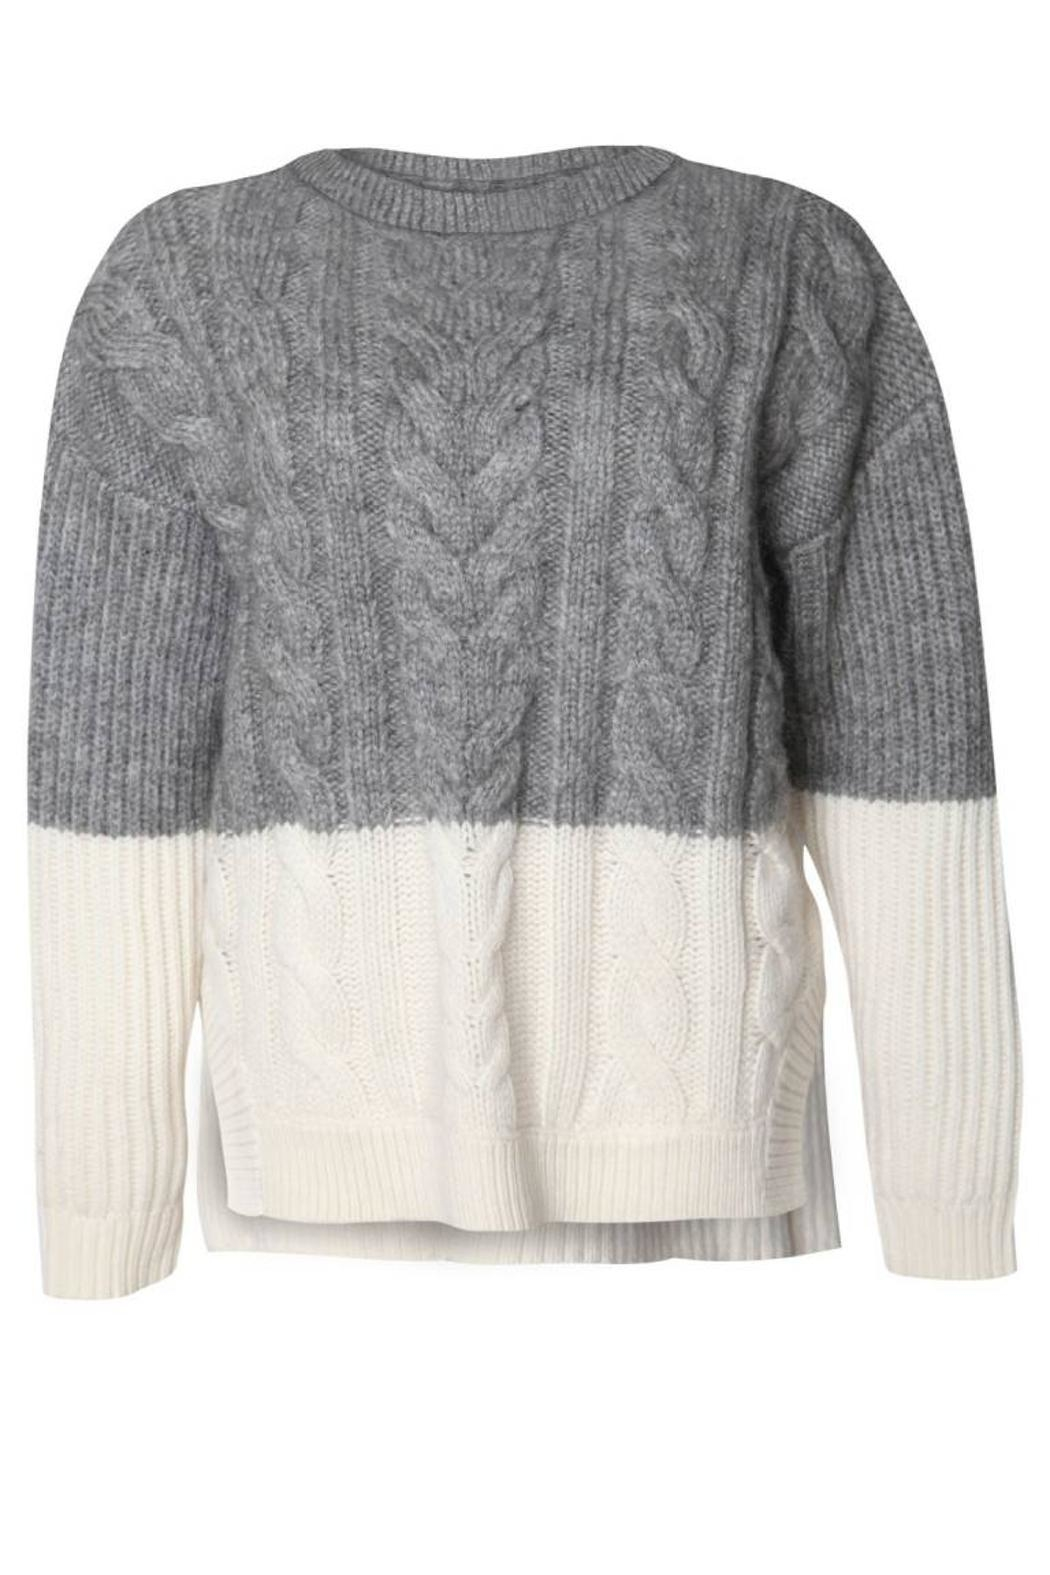 Dex Colorblock Cable-Knit Sweater from Florida by Dressing Room ...